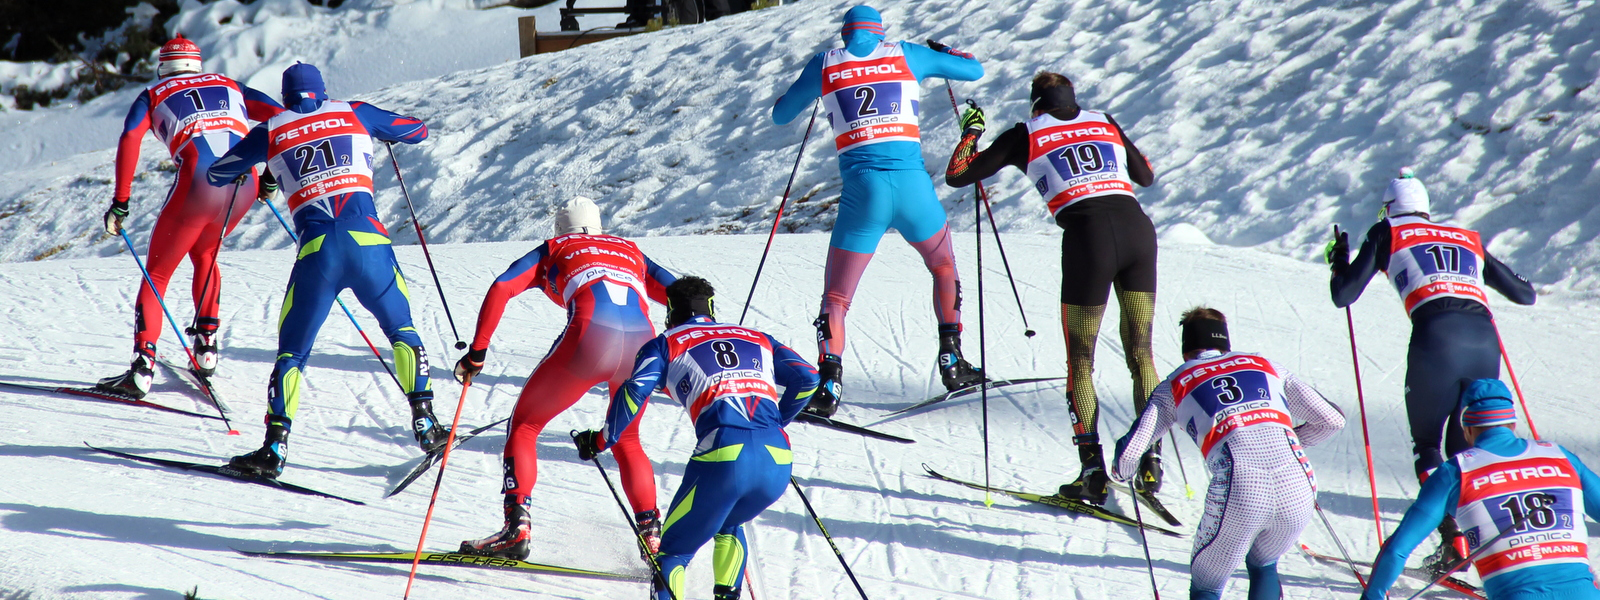 http://nd-ratece-planica.si/wp-content/uploads/2016/12/tekaci.png